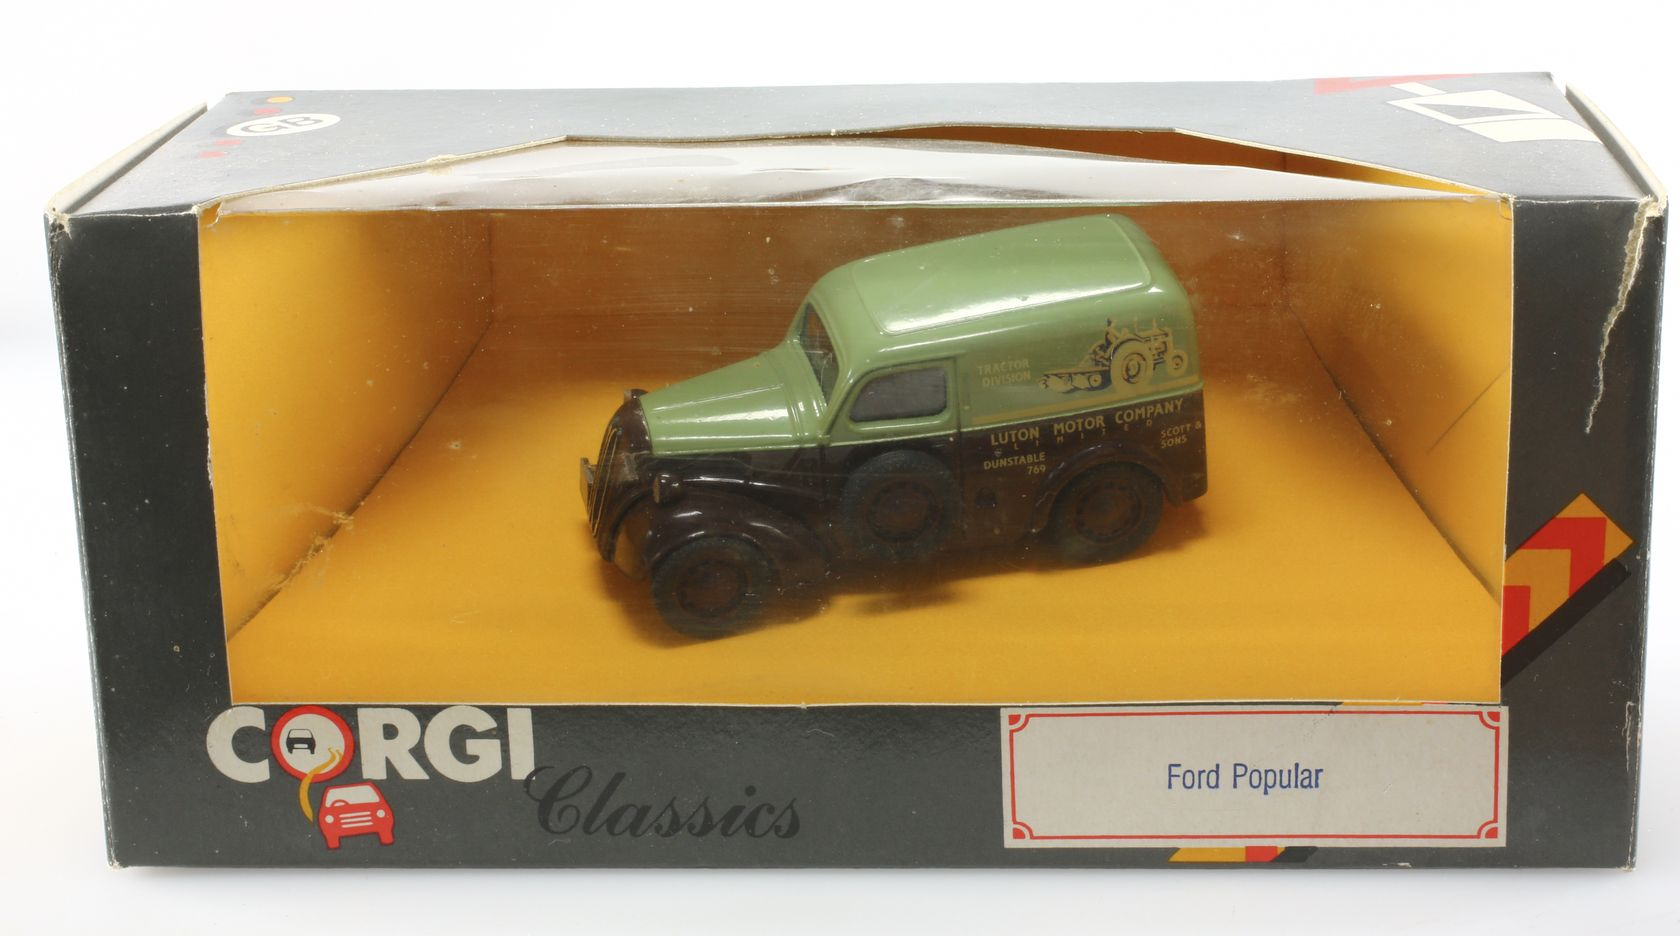 Ford Popular camionnette tractor division 1/43